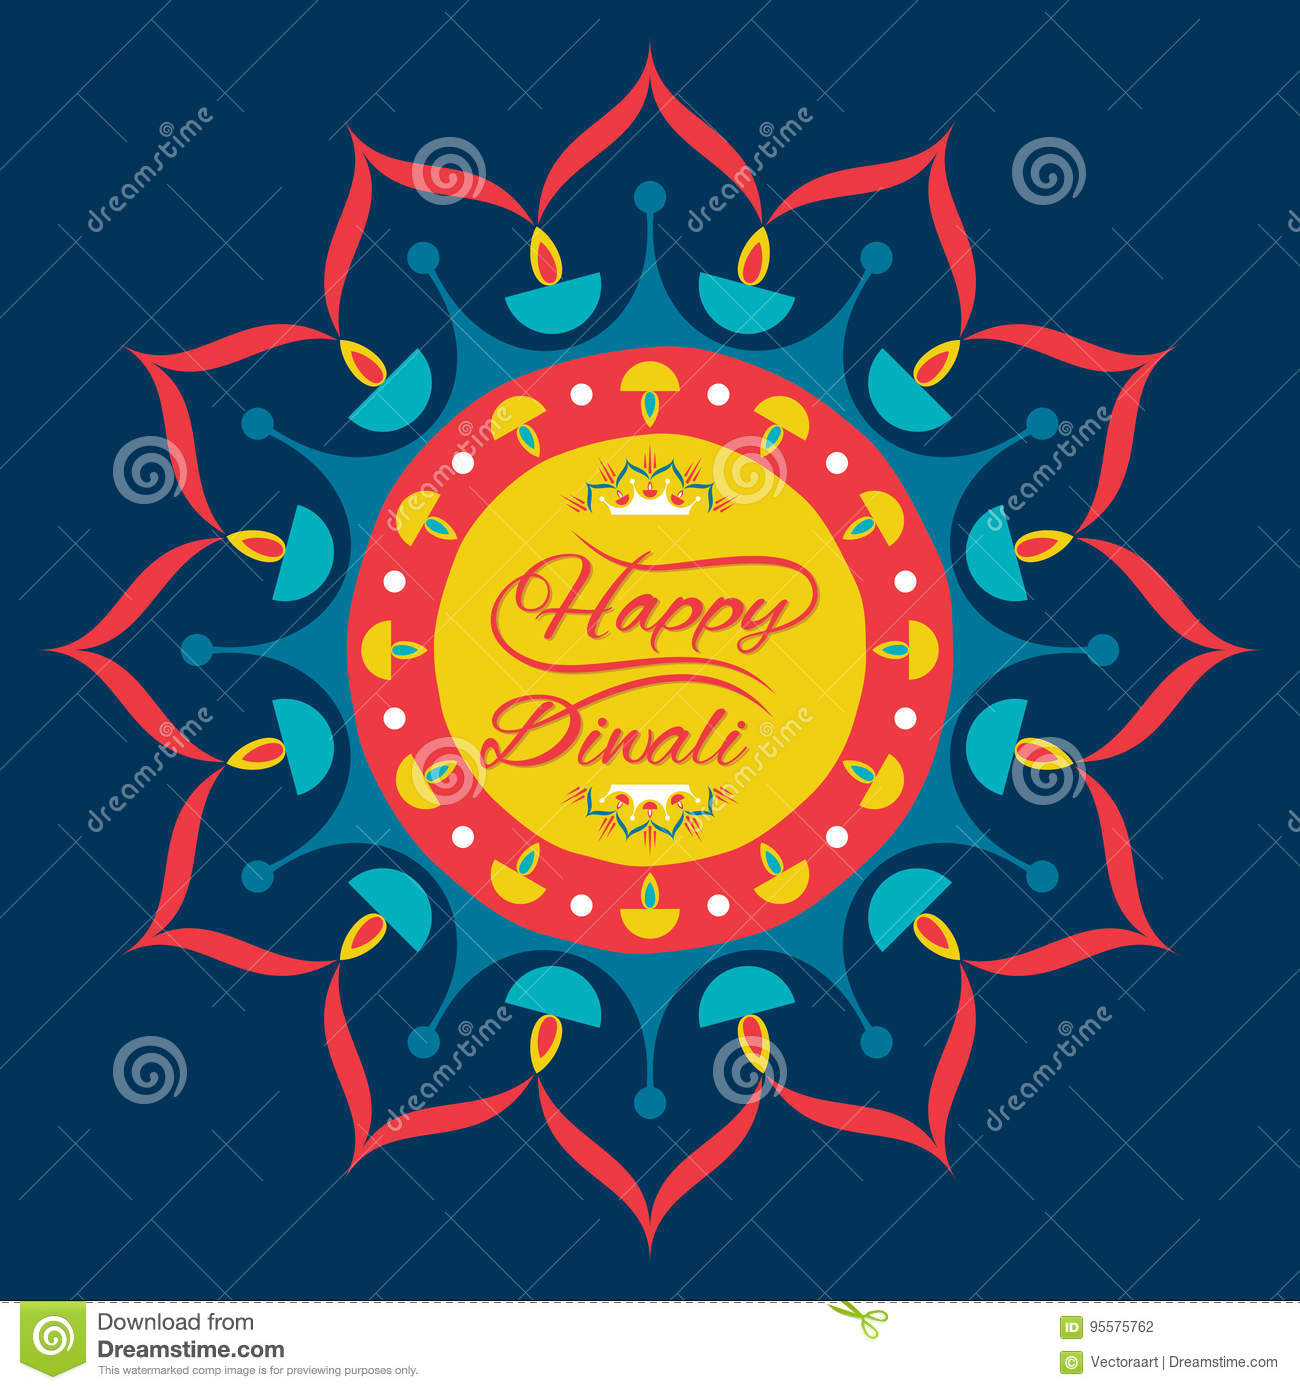 Happy Diwali Greeting Design Stock Vector Illustration Of Banner